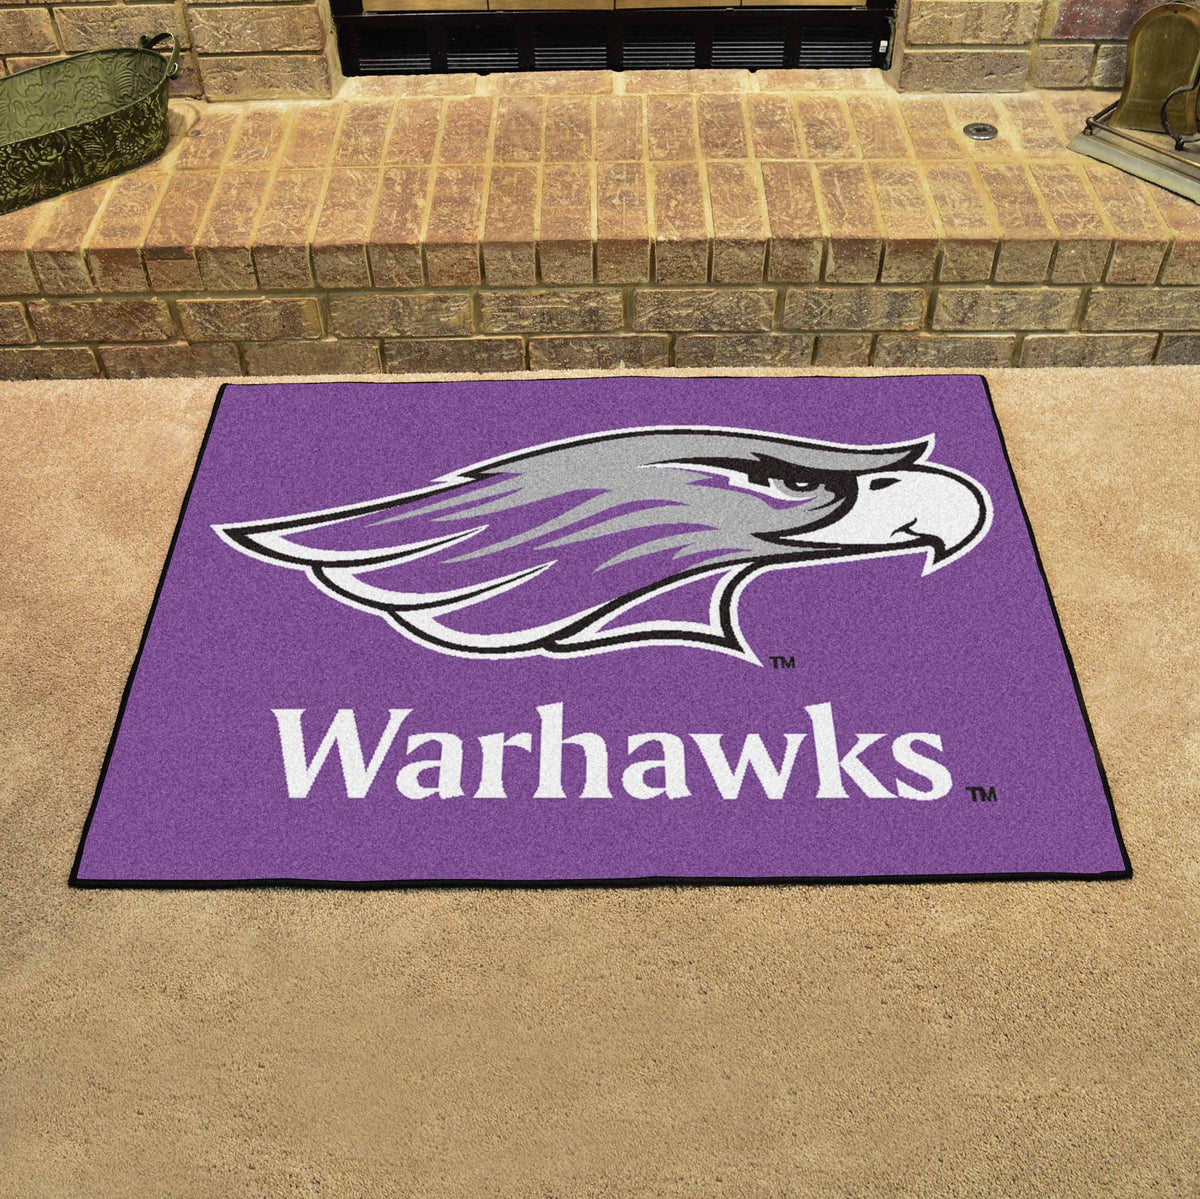 Collegiate - All-Star Mat: T - Z Collegiate Mats, Rectangular Mats, All-Star Mat, Collegiate, Home Fan Mats Wisconsin-Whitewater